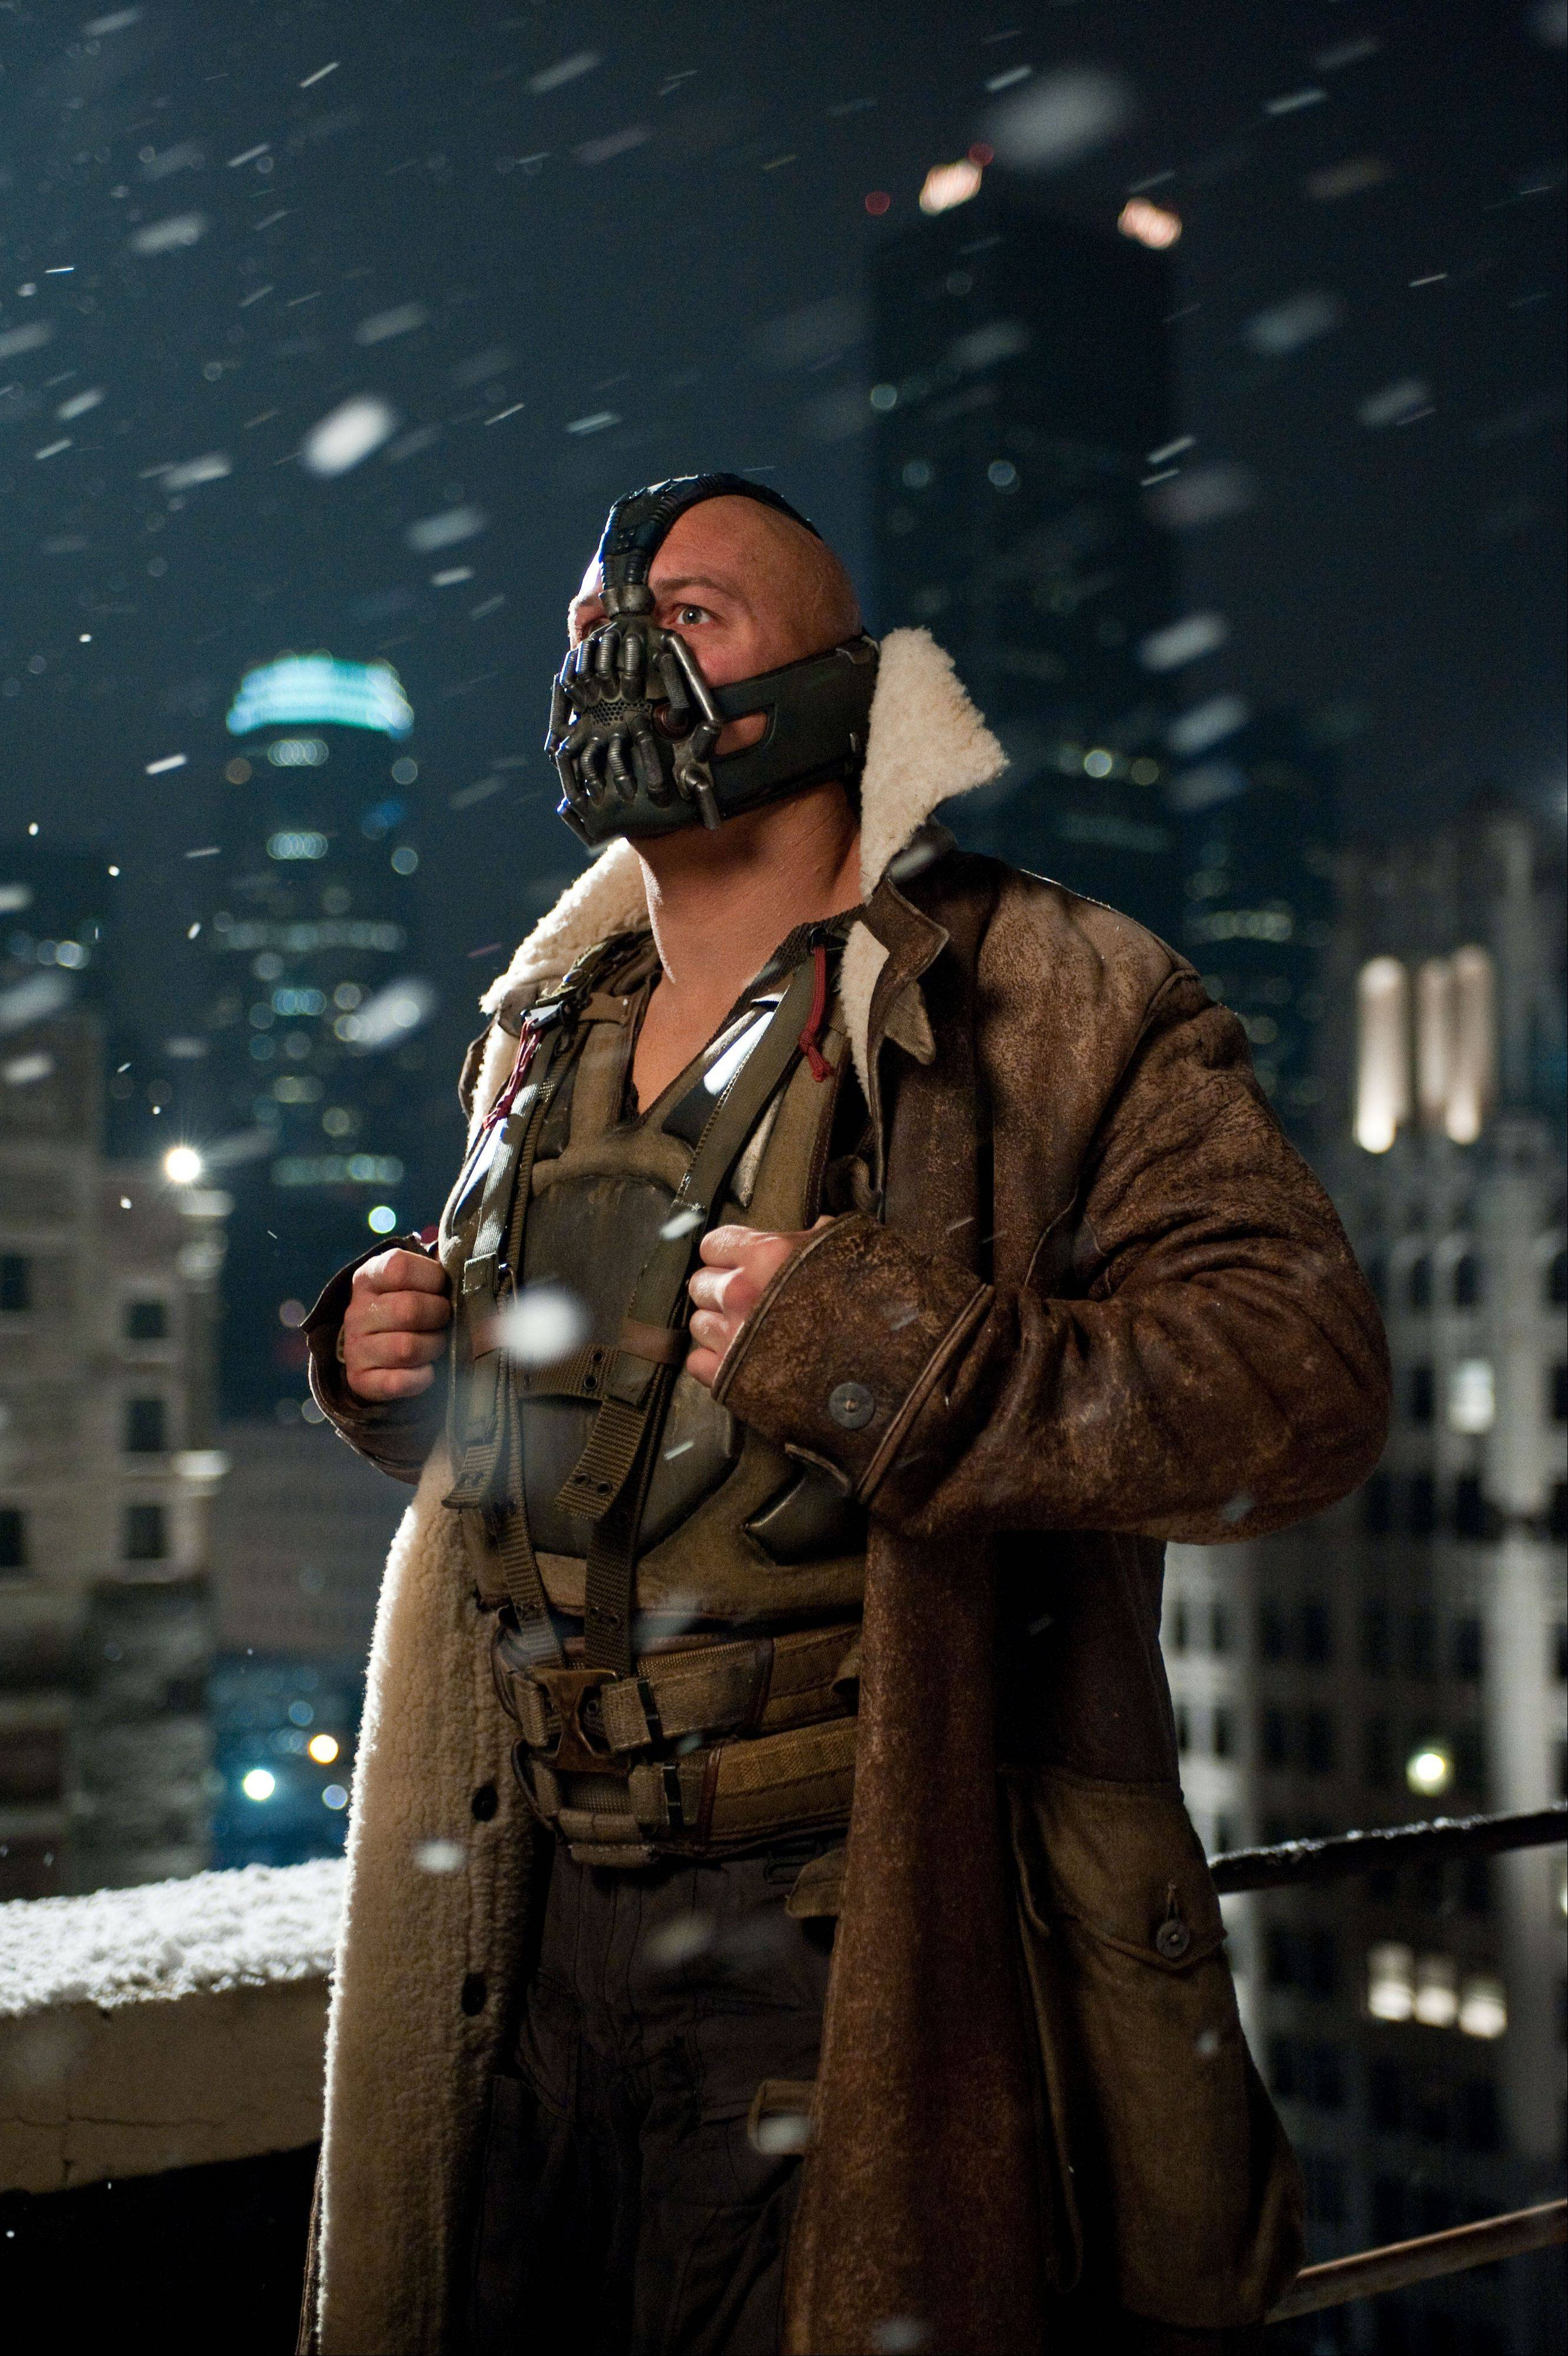 This undated film image released by Warner Bros. Pictures shows Tom Hardy as Bane in a scene from the action thriller �The Dark Knight Rises.� A gunman in a gas mask barged into a crowded Denver-area theater during a midnight premiere of the Batman movie on Friday, July 20, 2012, hurled a gas canister and then opened fire, killing 12 people and injuring at least 50 others in one of the deadliest mass shootings in recent U.S. history.